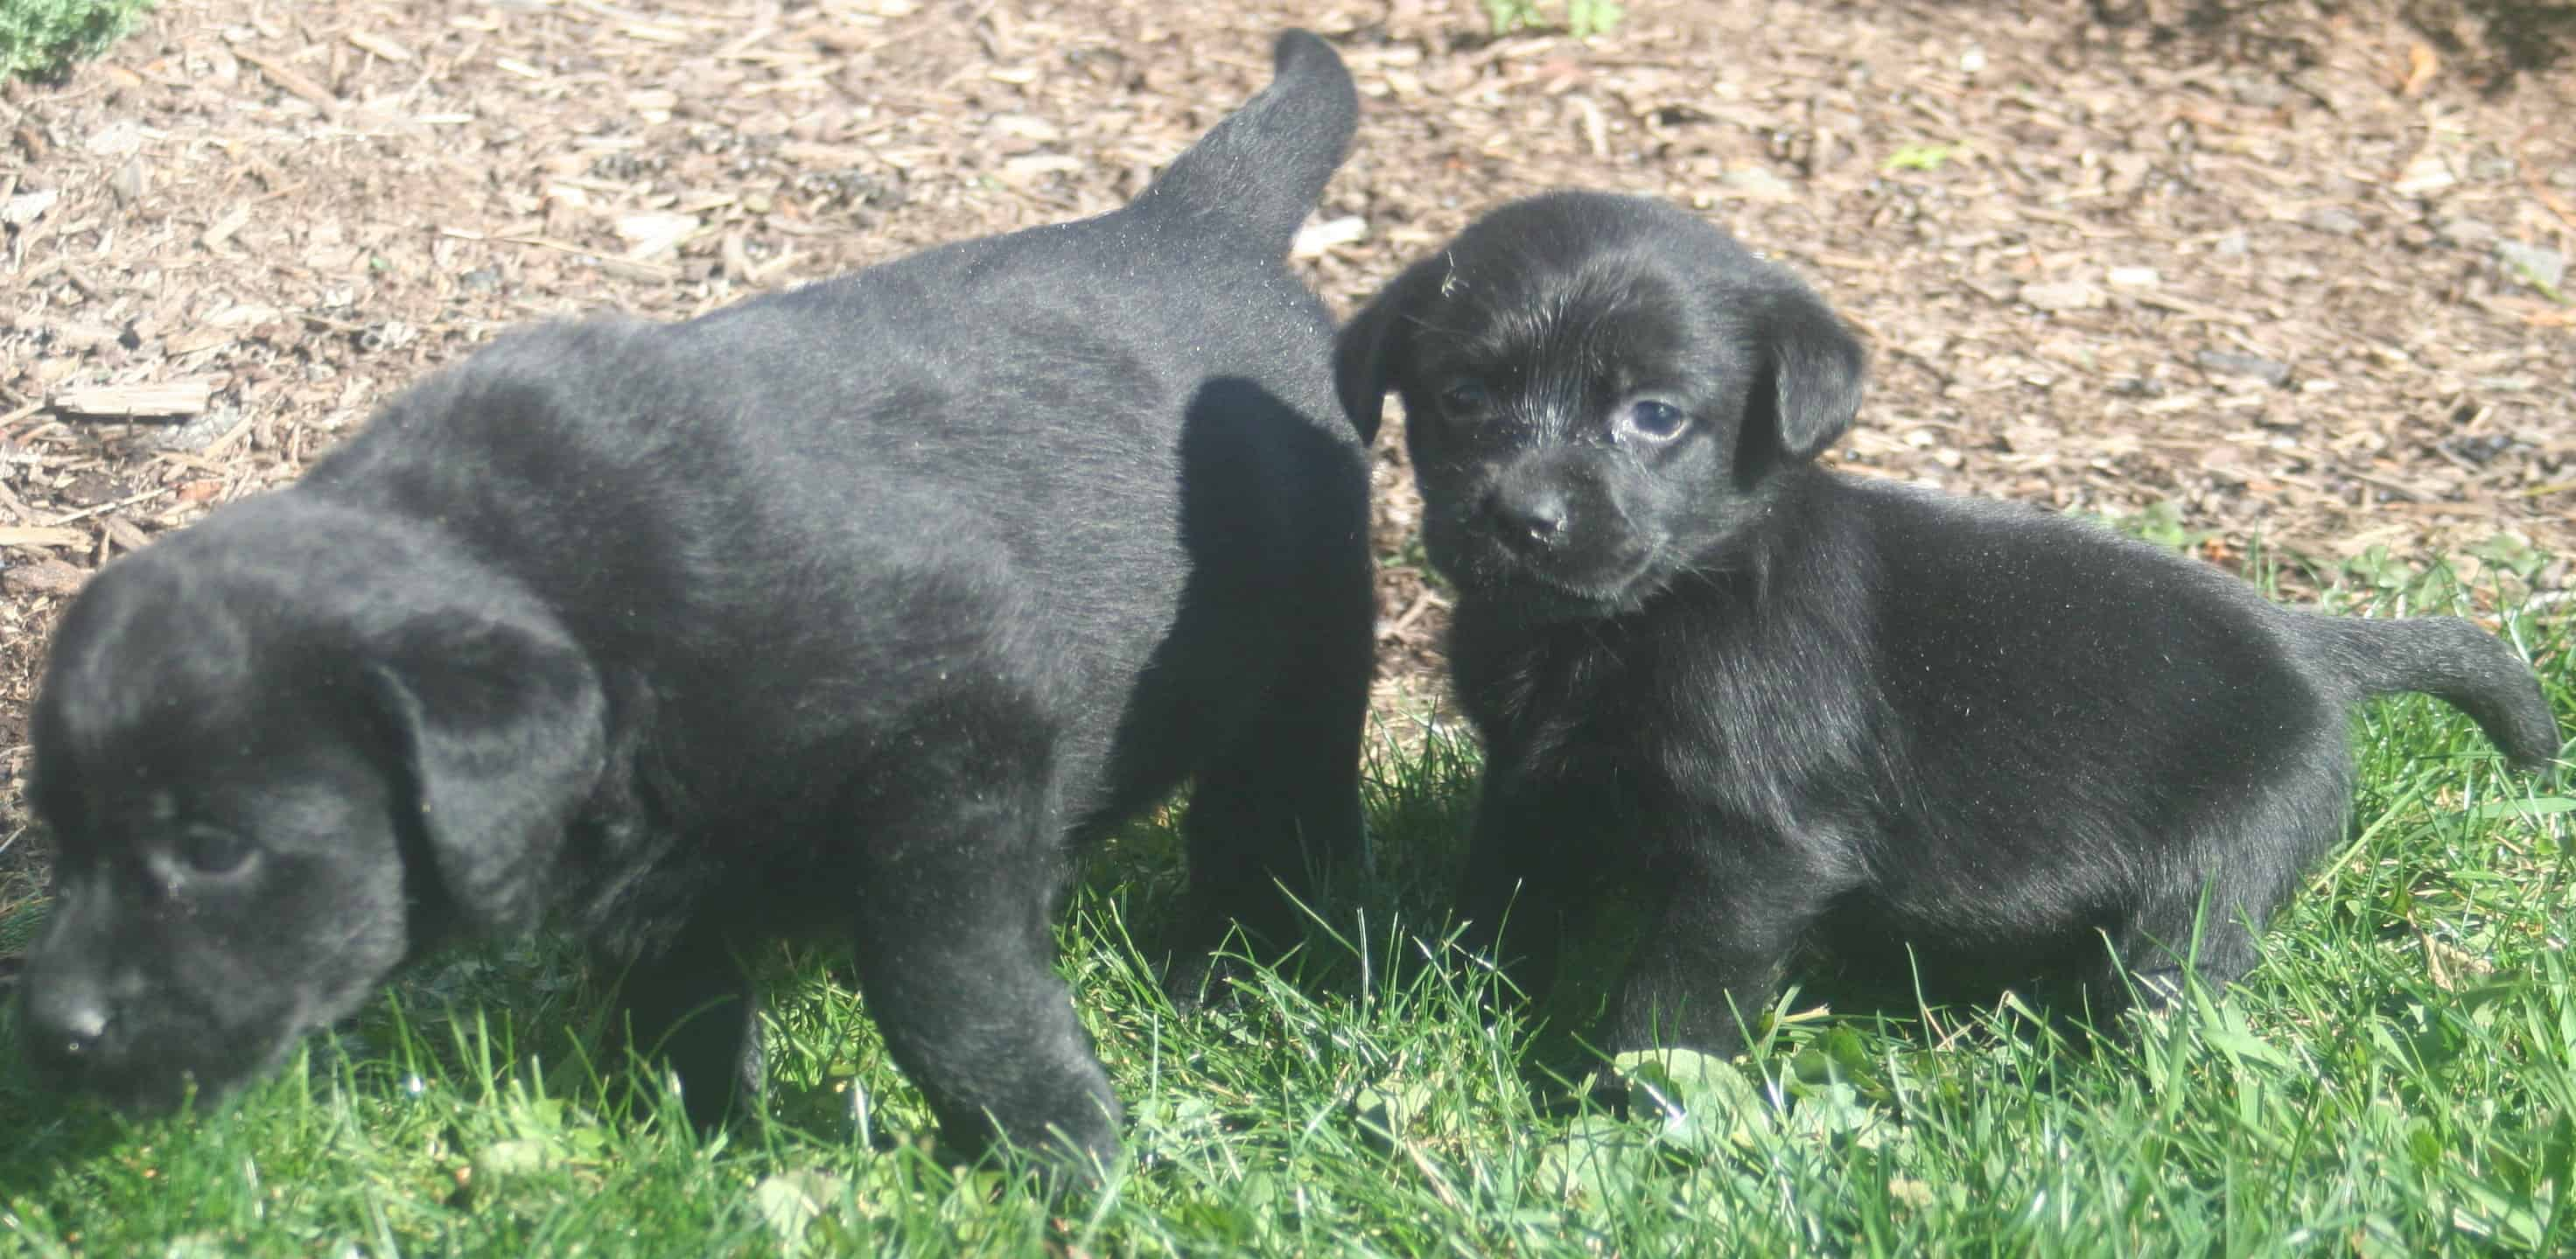 Erica Mackie Pups Endless Mt Labradors Good Size